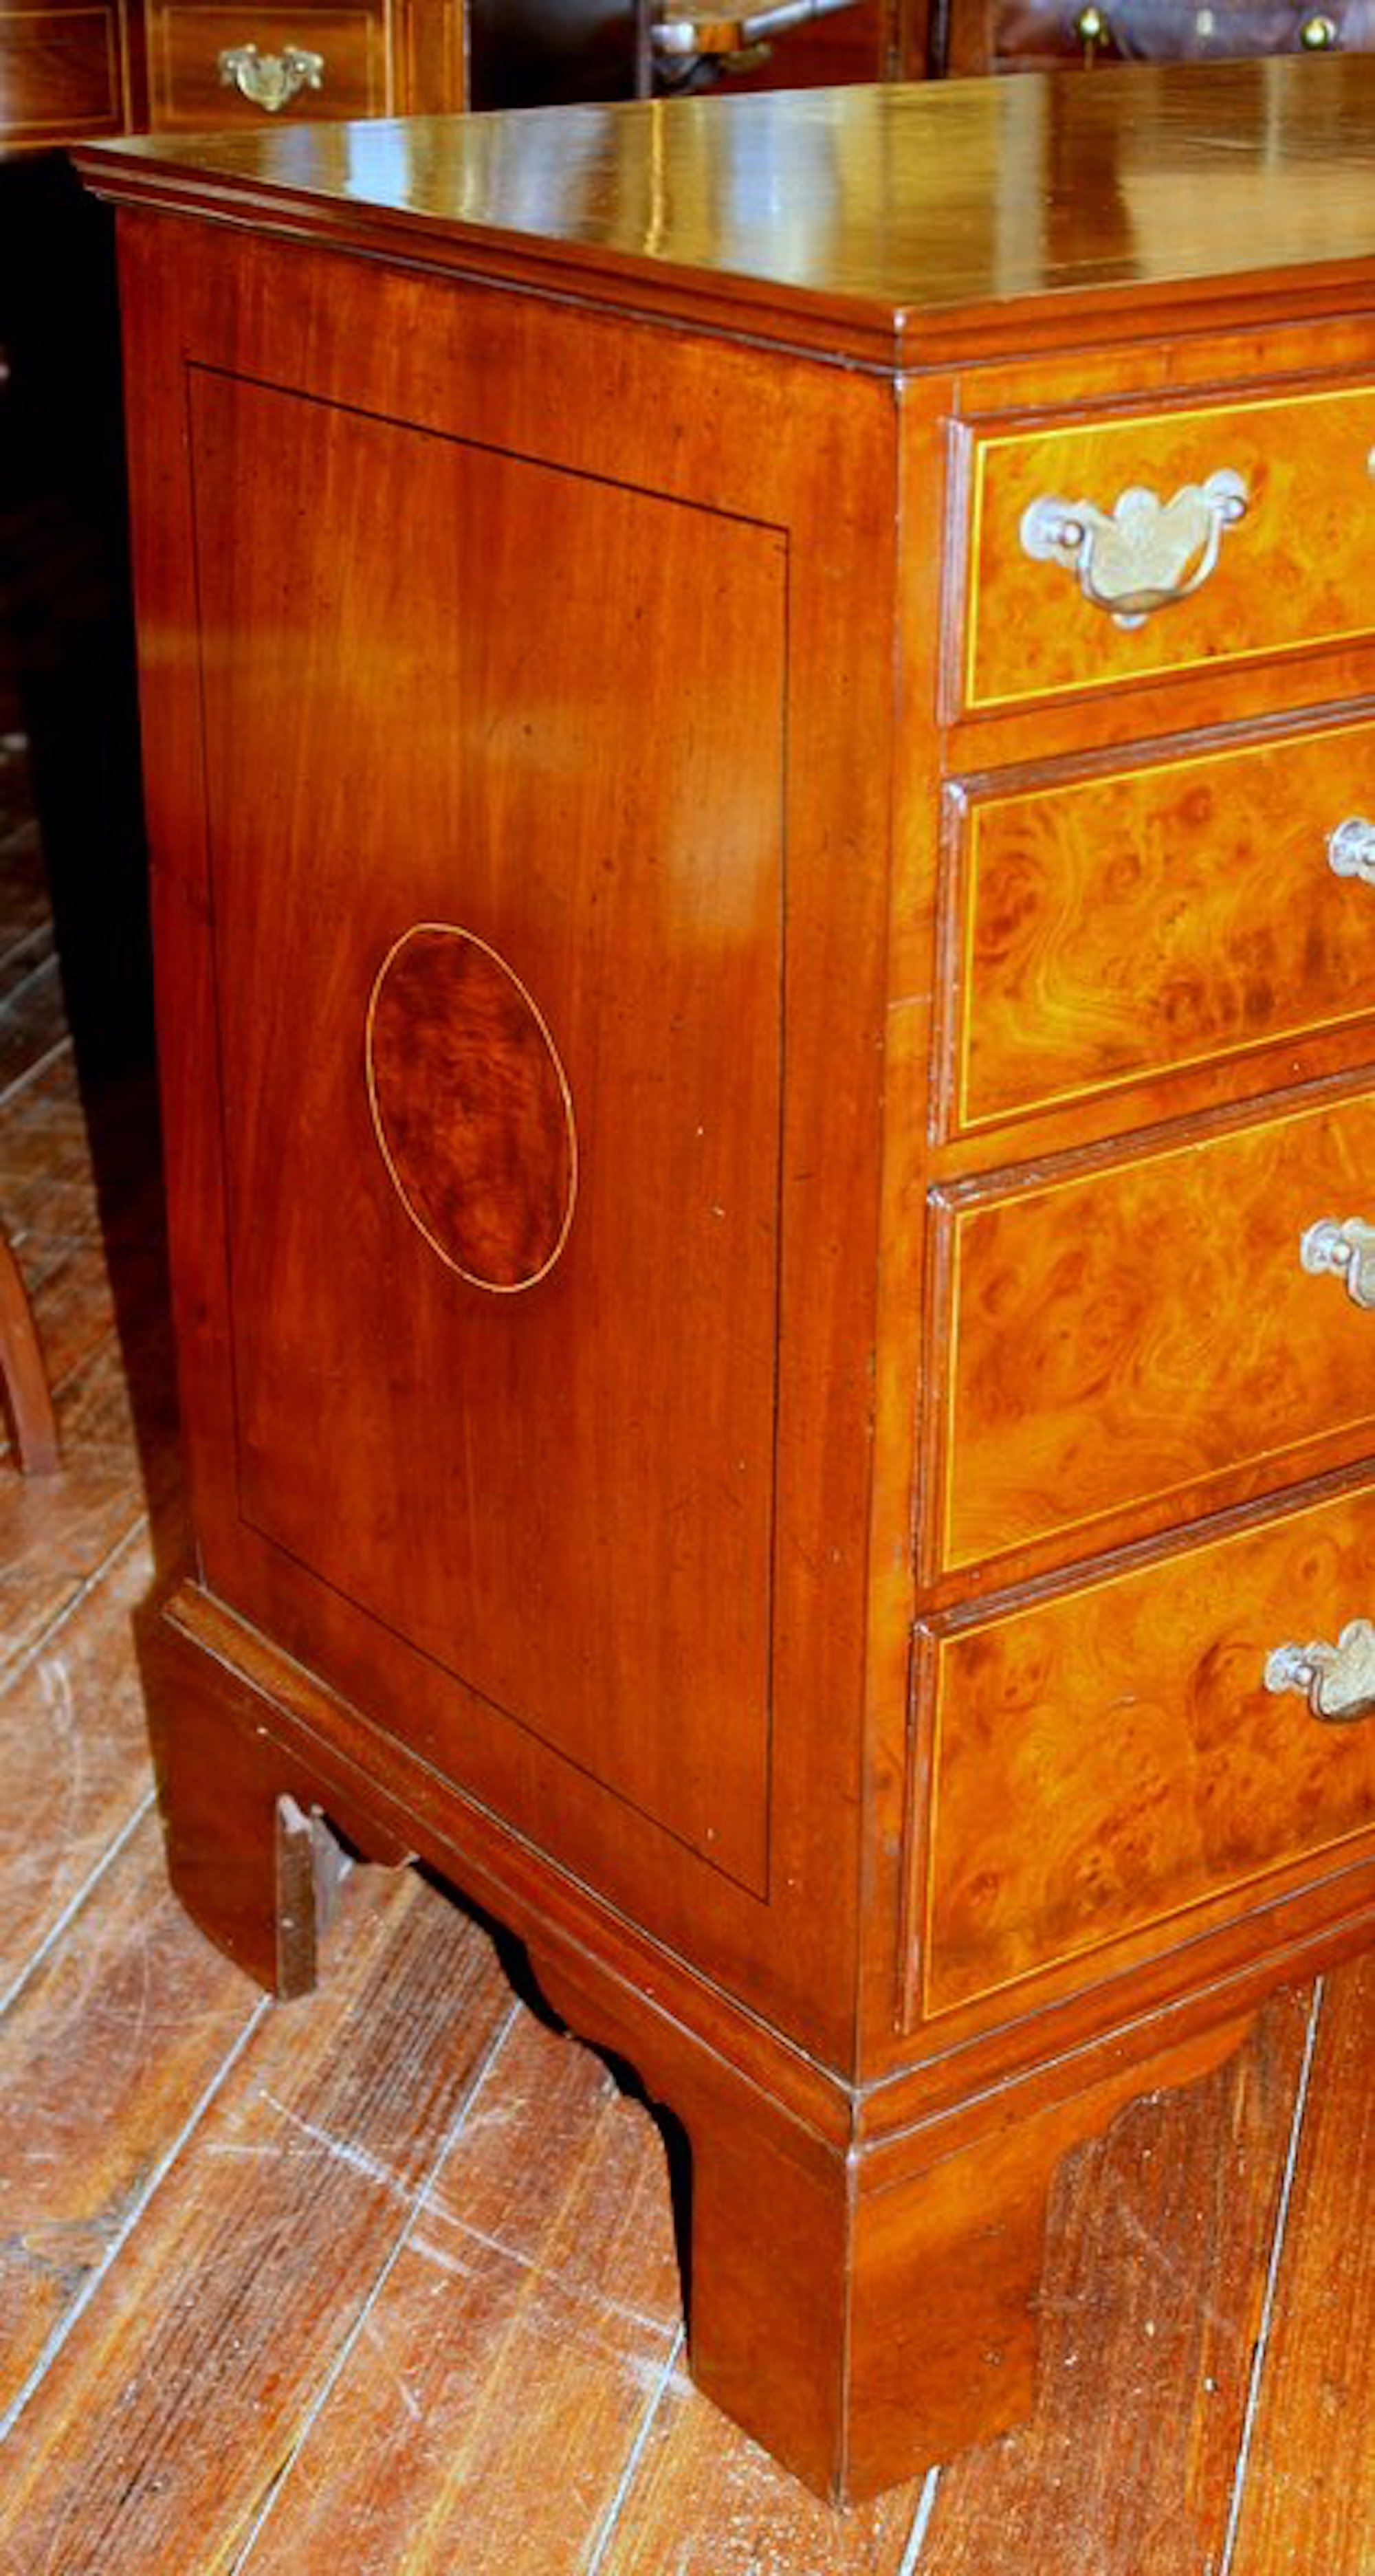 id chest case drawer sale lacquered storage french by of drawers chests jansen at for style a f pieces louis furniture org commodes xv red